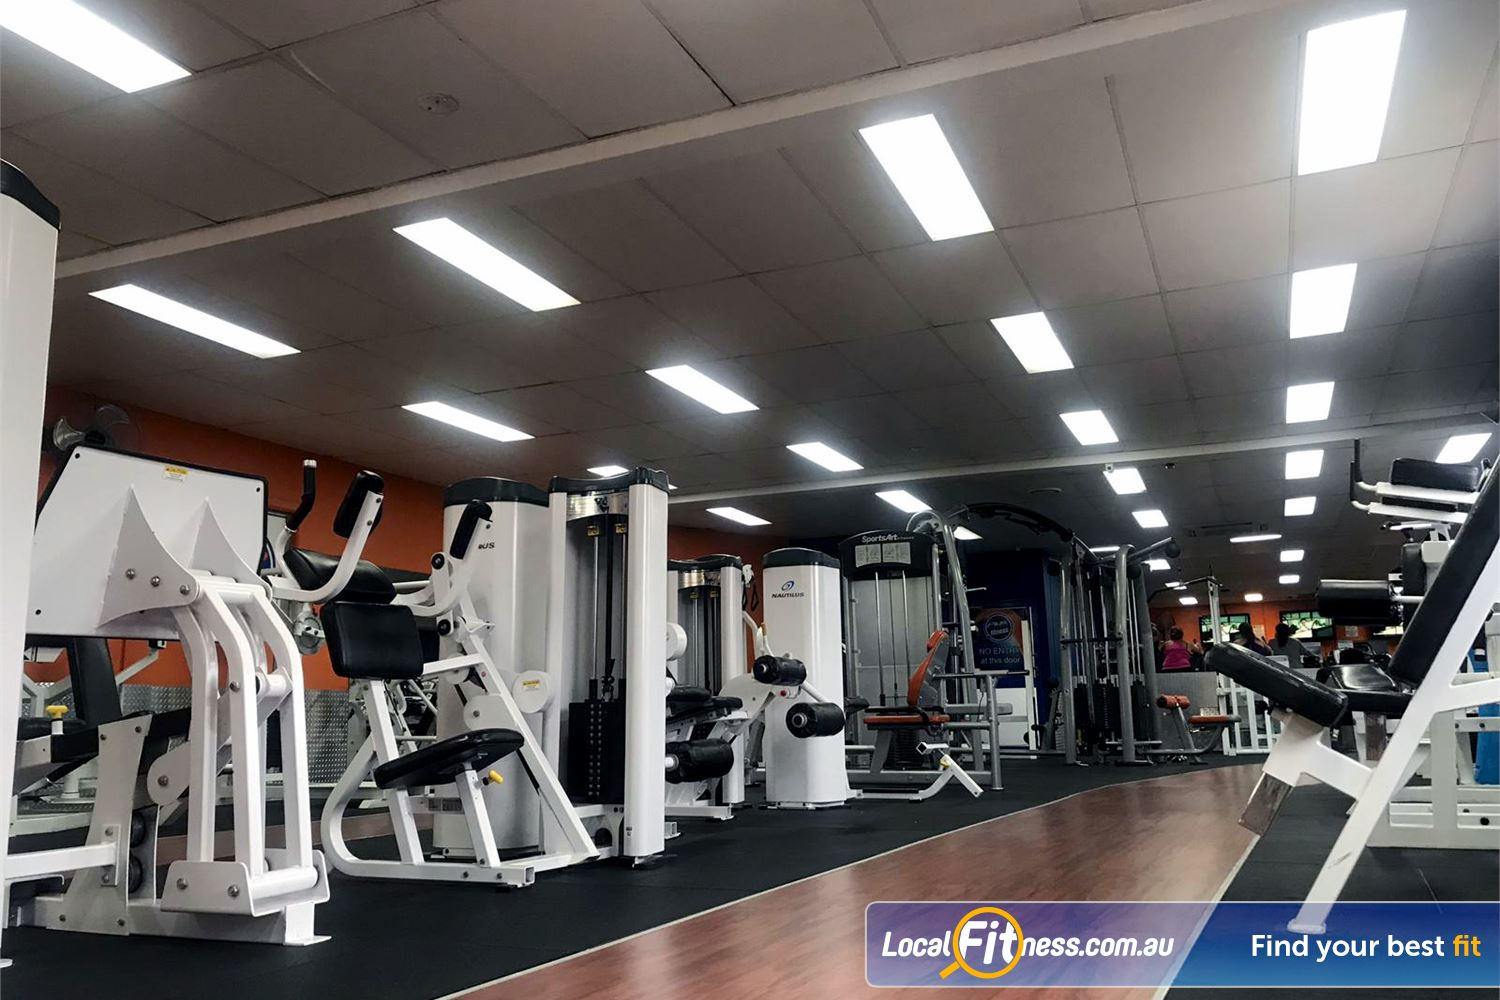 Plus Fitness Health Clubs Northmead Our Northmead gym includes rows of easy to use pin-loading equipment.